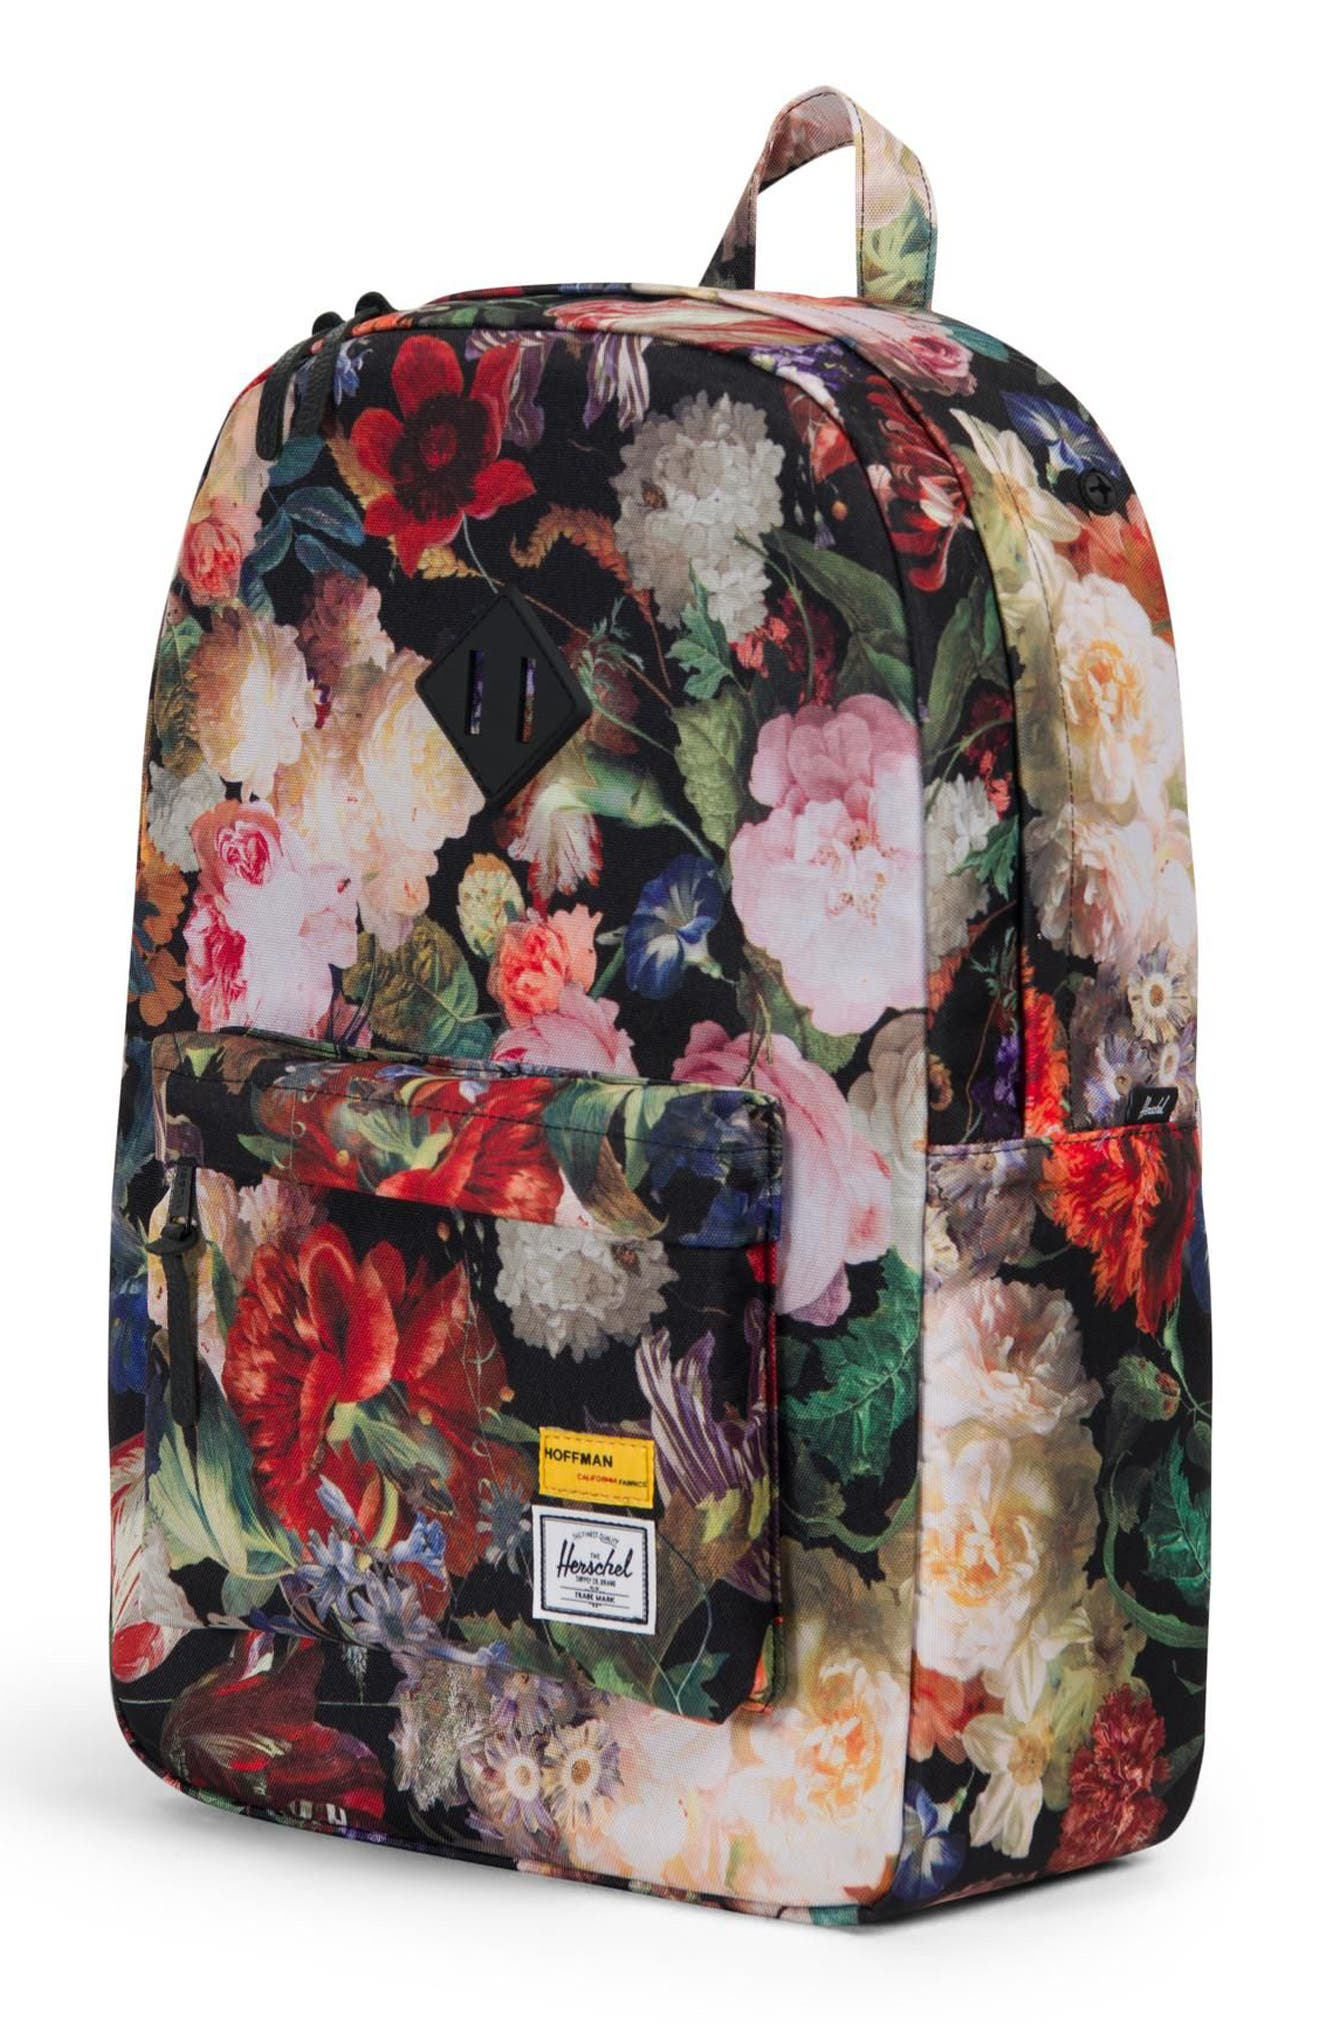 Heritage Hoffman Backpack,                             Alternate thumbnail 3, color,                             FALL FLORAL